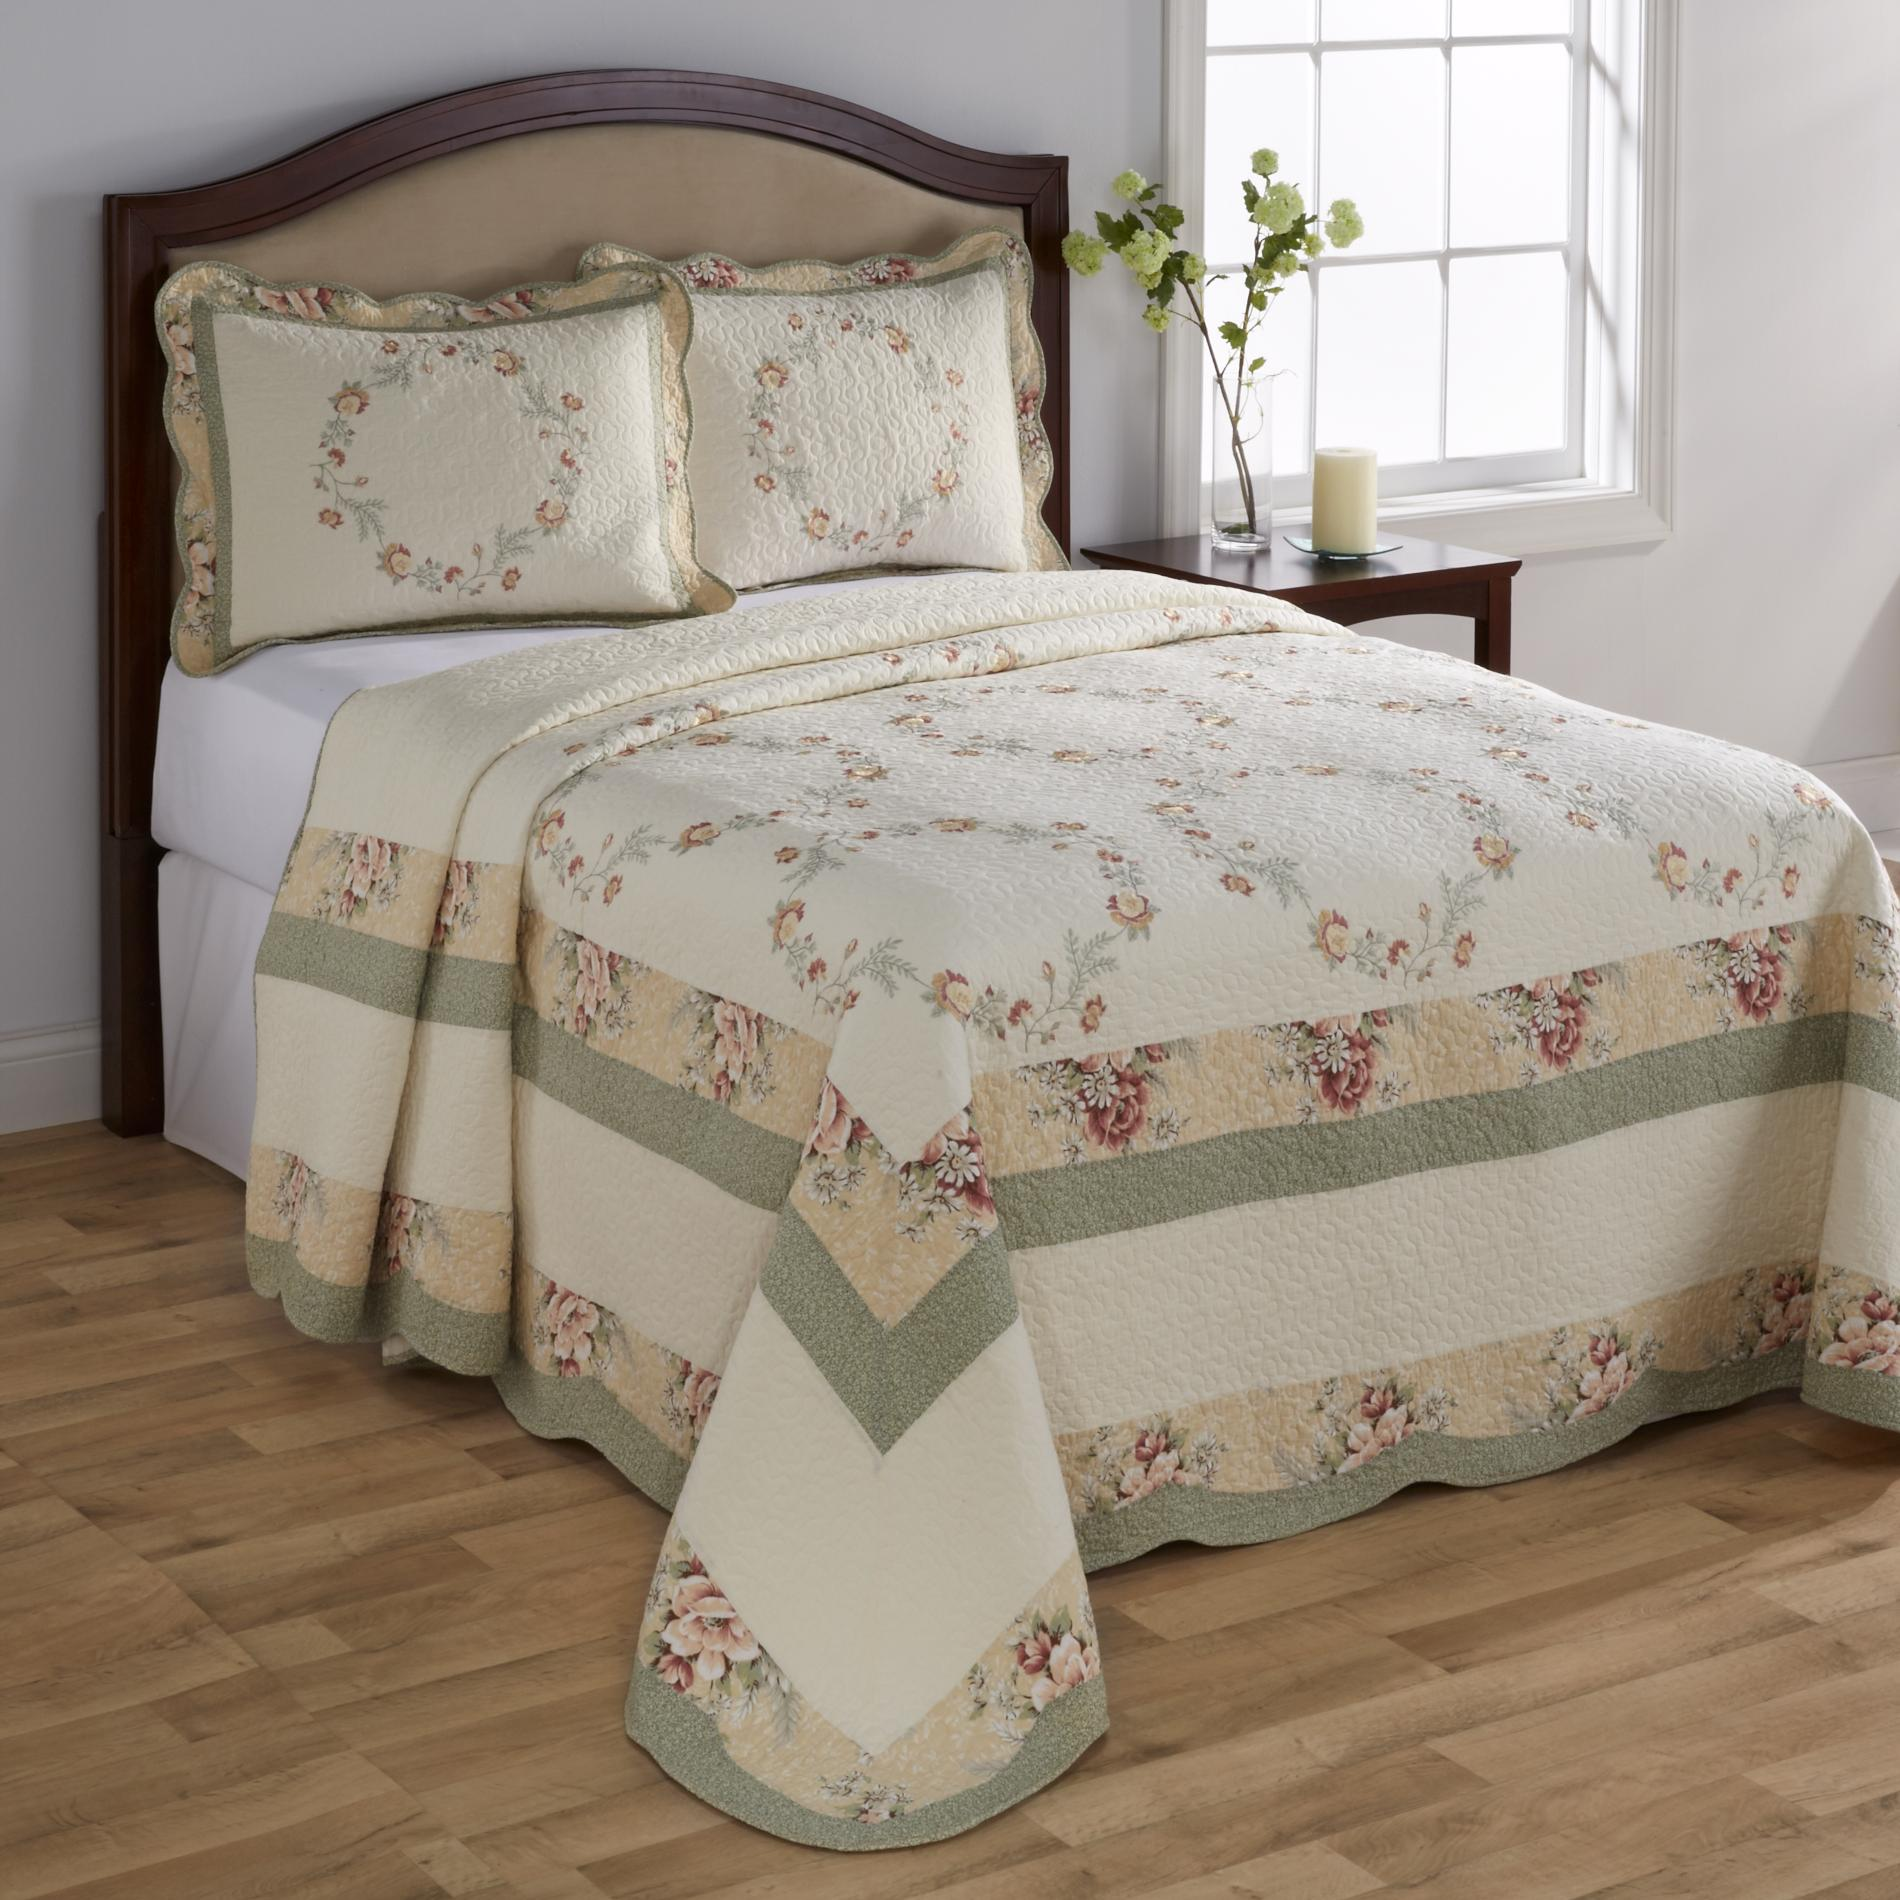 Cannon Elisabeth Quilted Bedspread